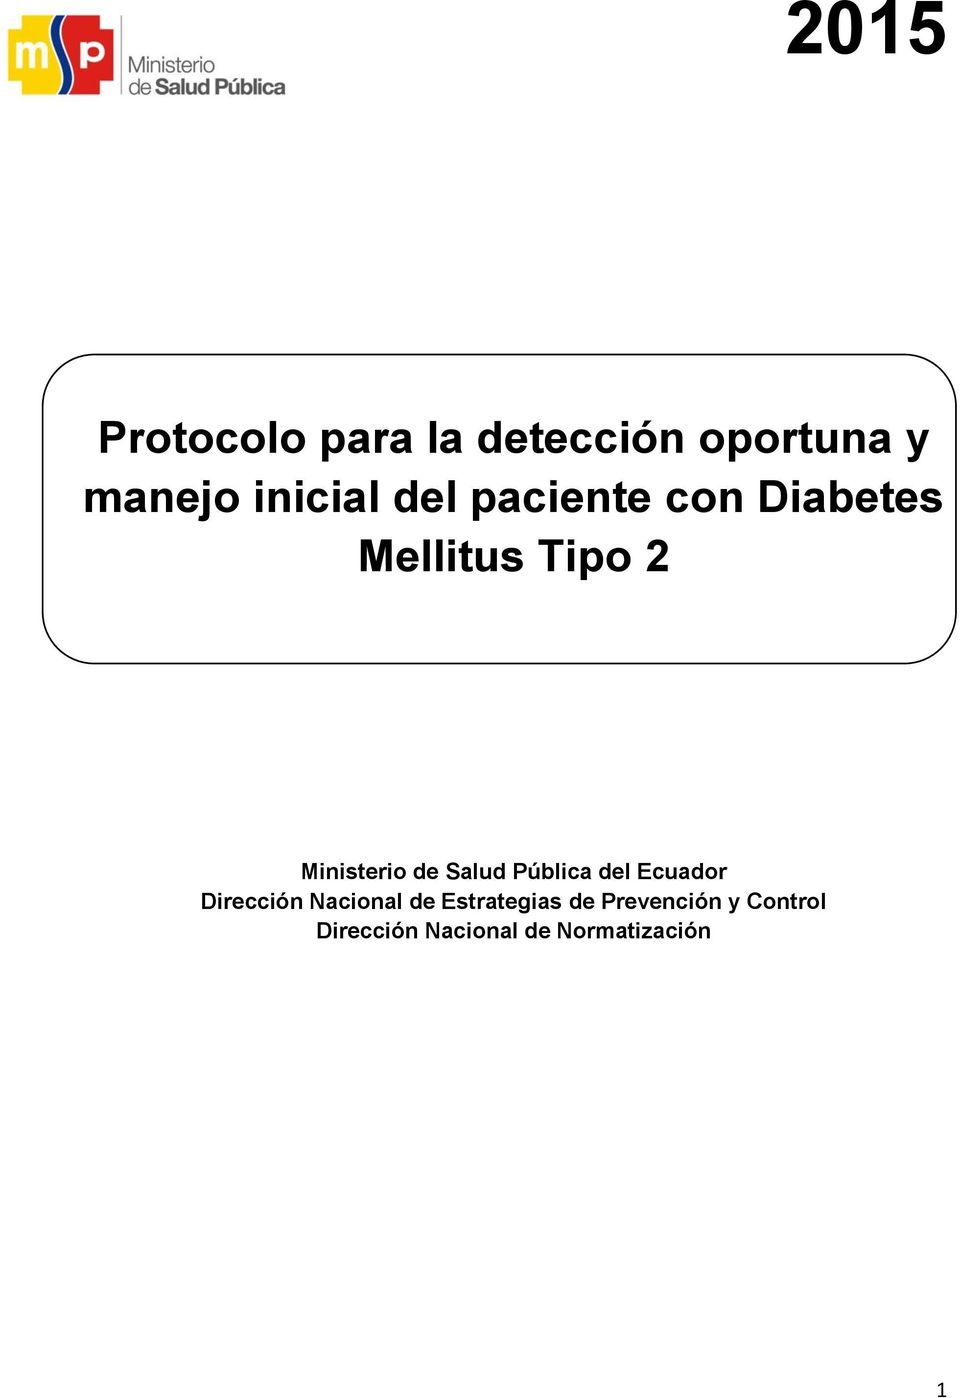 protocolo de diabetes 2